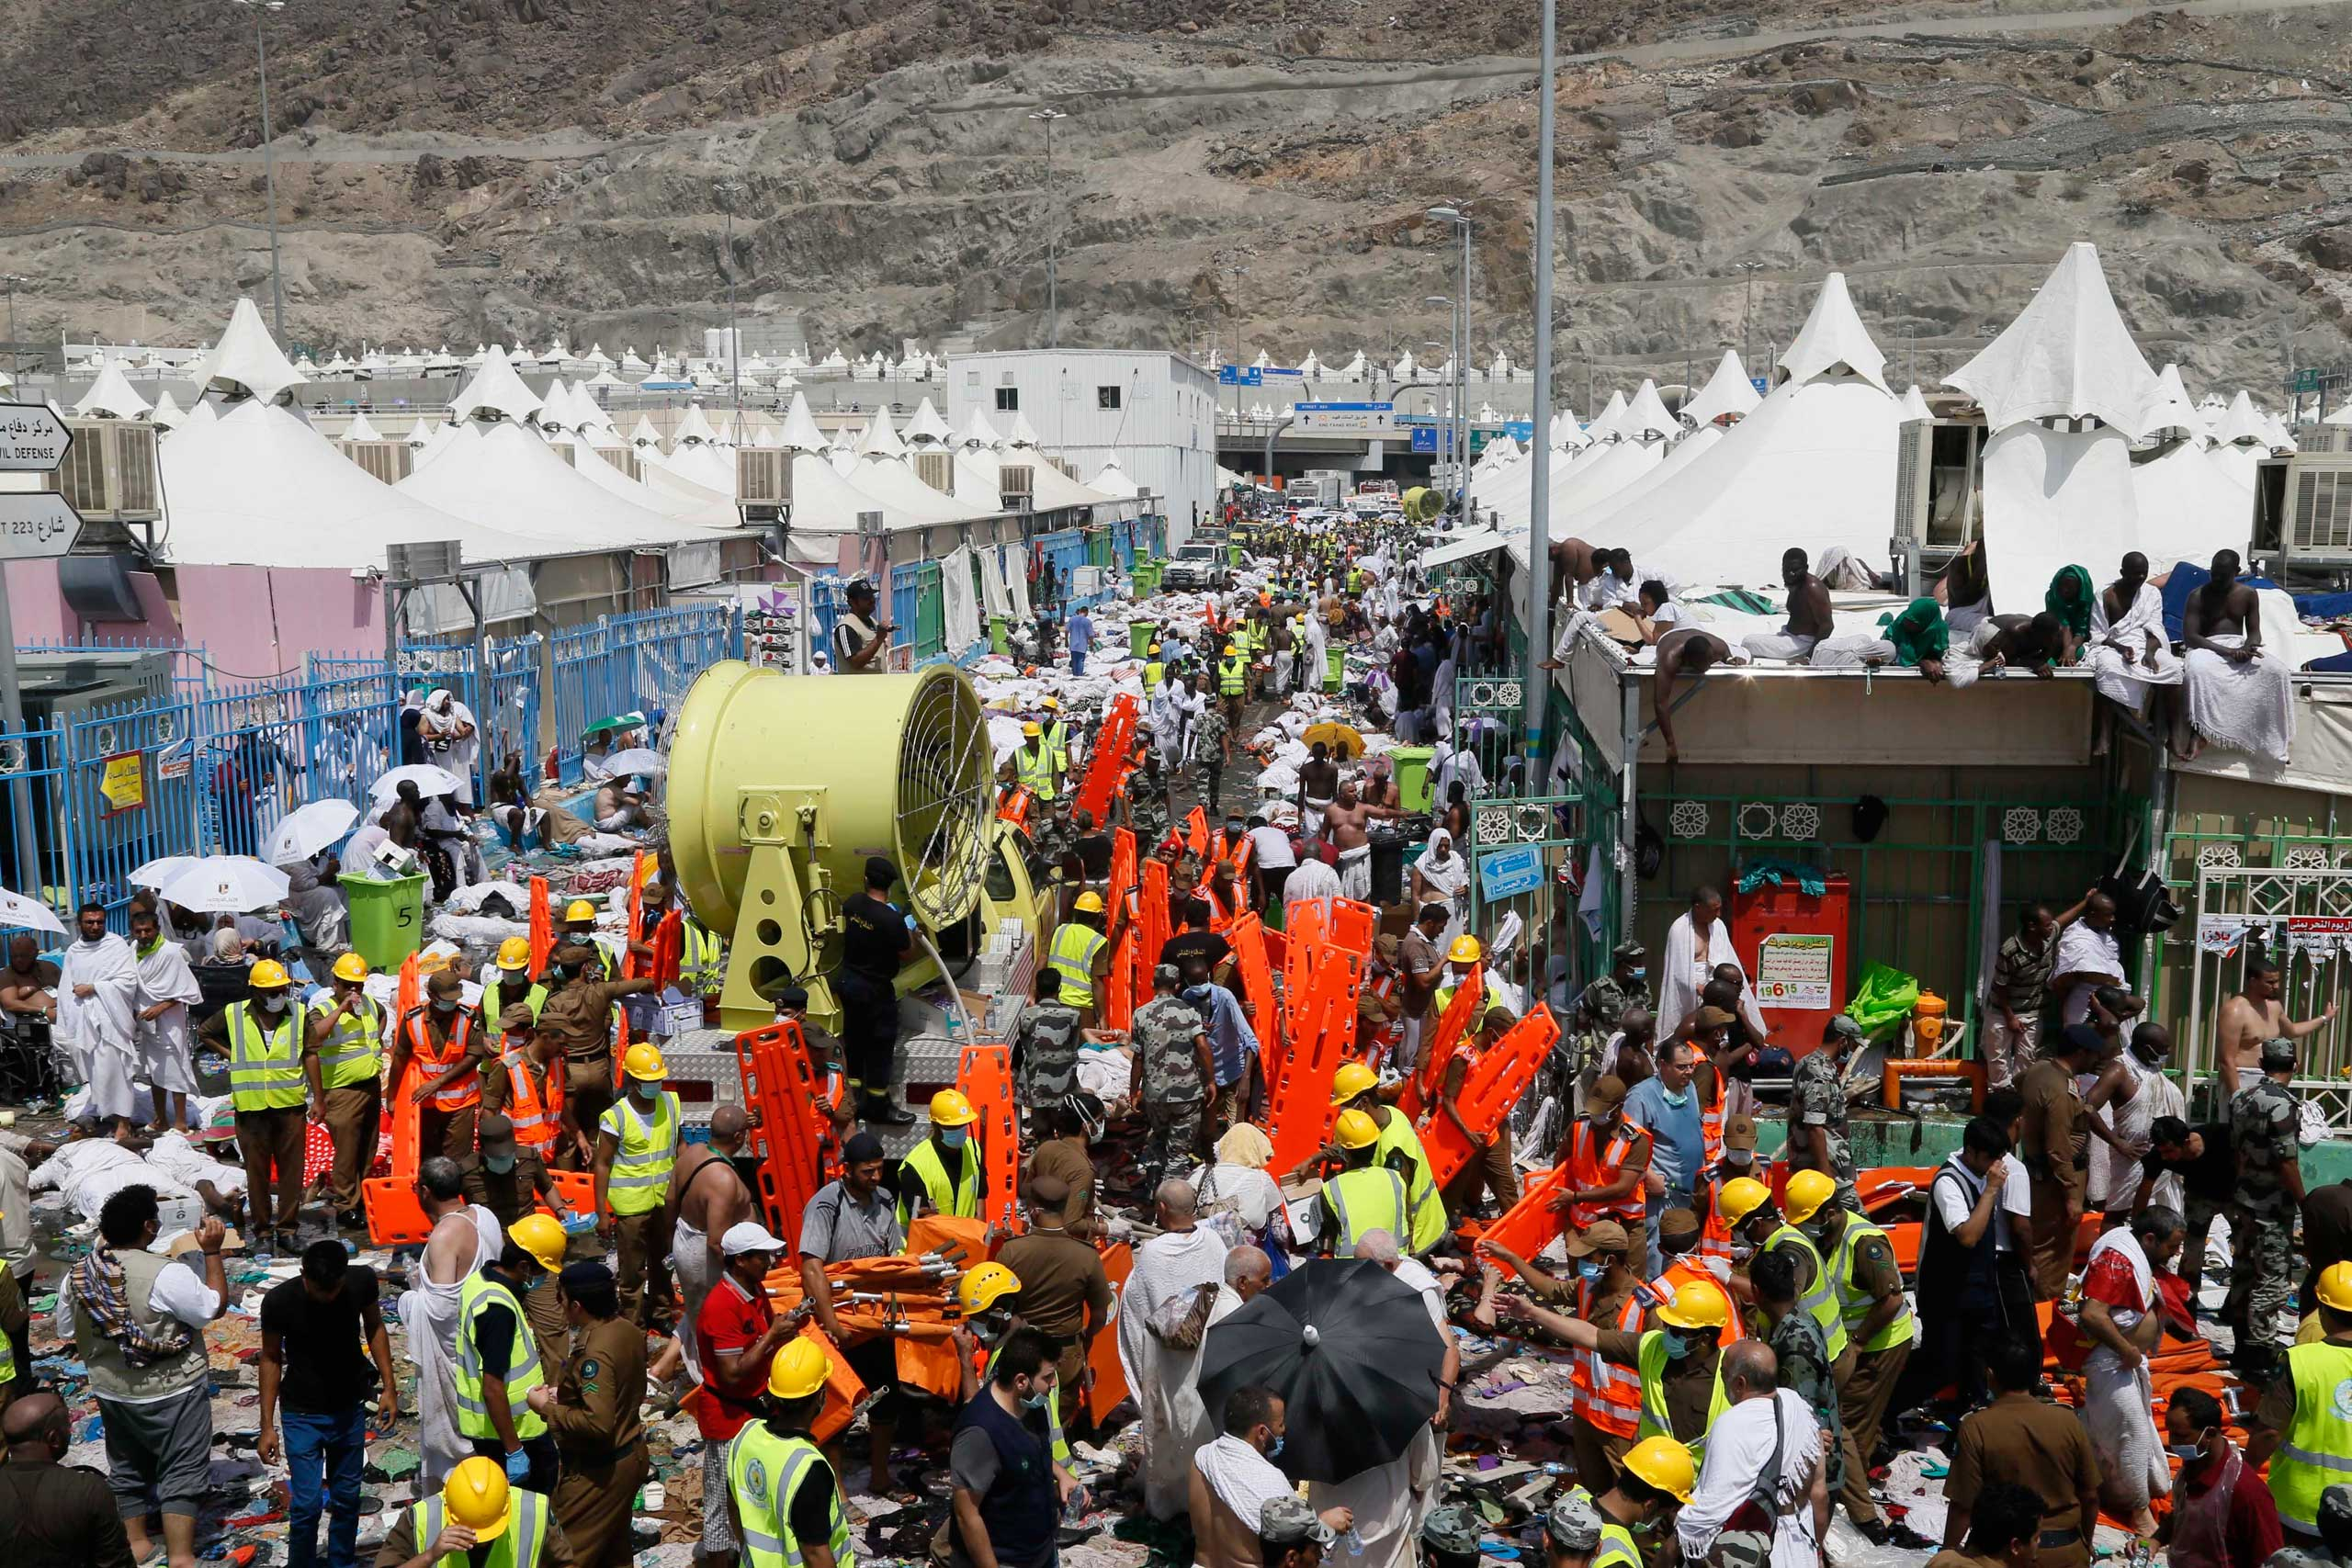 Muslim pilgrims and rescuers gather around people who died in Mina, Saudi Arabia during the annual hajj pilgrimage on Sept. 24, 2015.